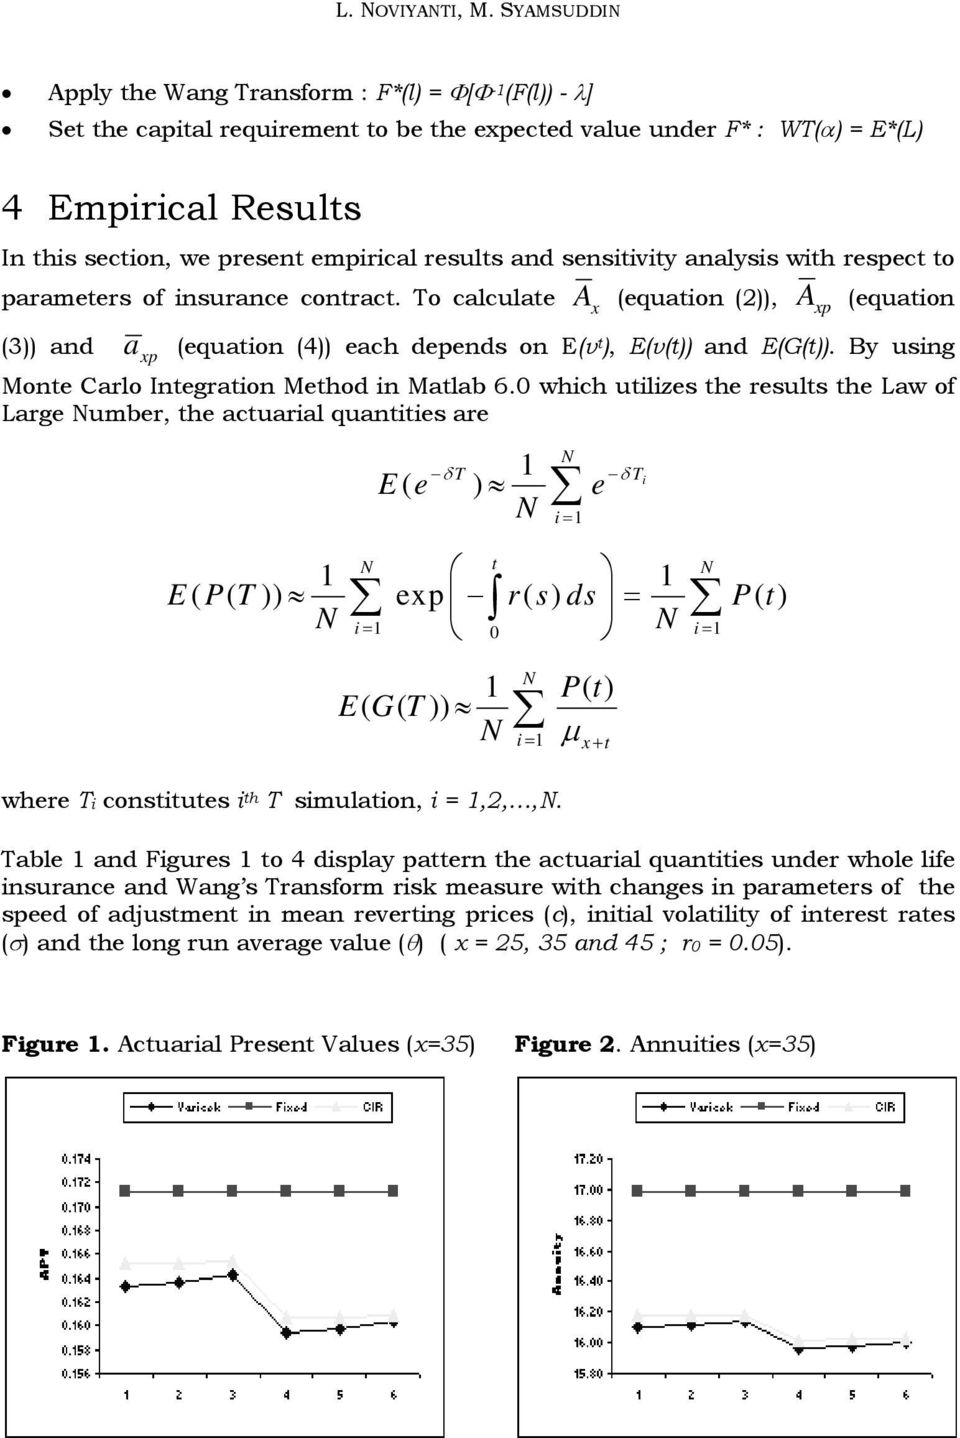 sensiiviy analysis wih respec o parameers of insurance conrac. To calculae A (equaion ()), A p (equaion (3)) and a p (equaion (4)) each depends on E(v ), E(v()) and E(G()).